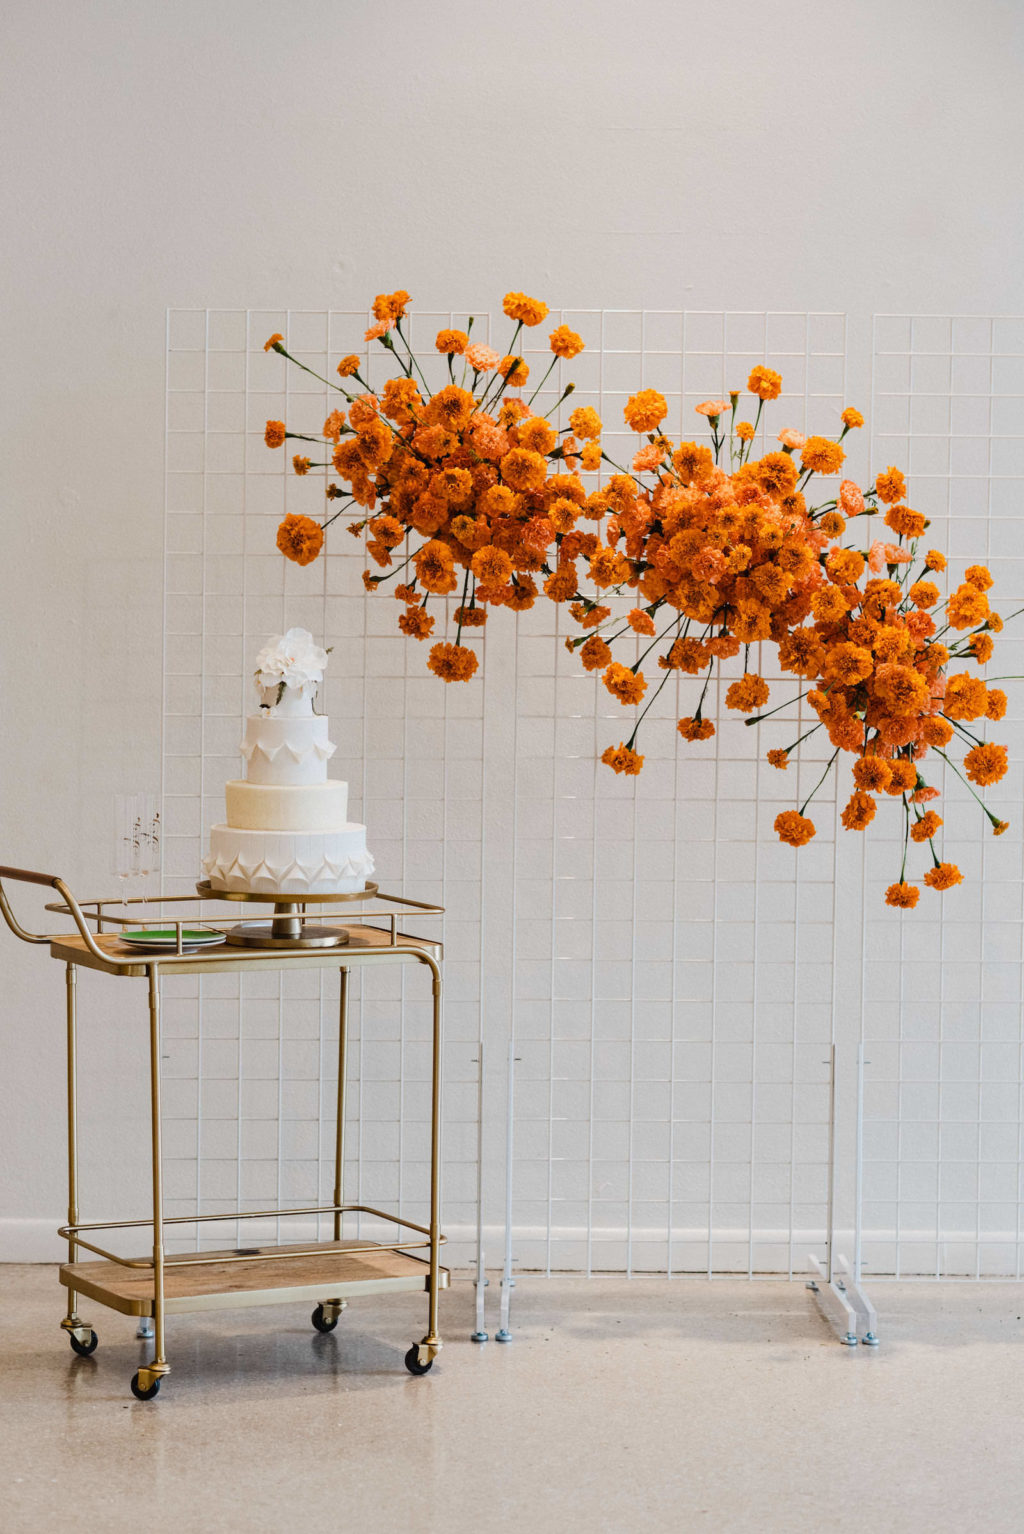 Vintage Bar Cart with White Four Tier Wedding Cake, White Cage Panel with Orange Marigolds